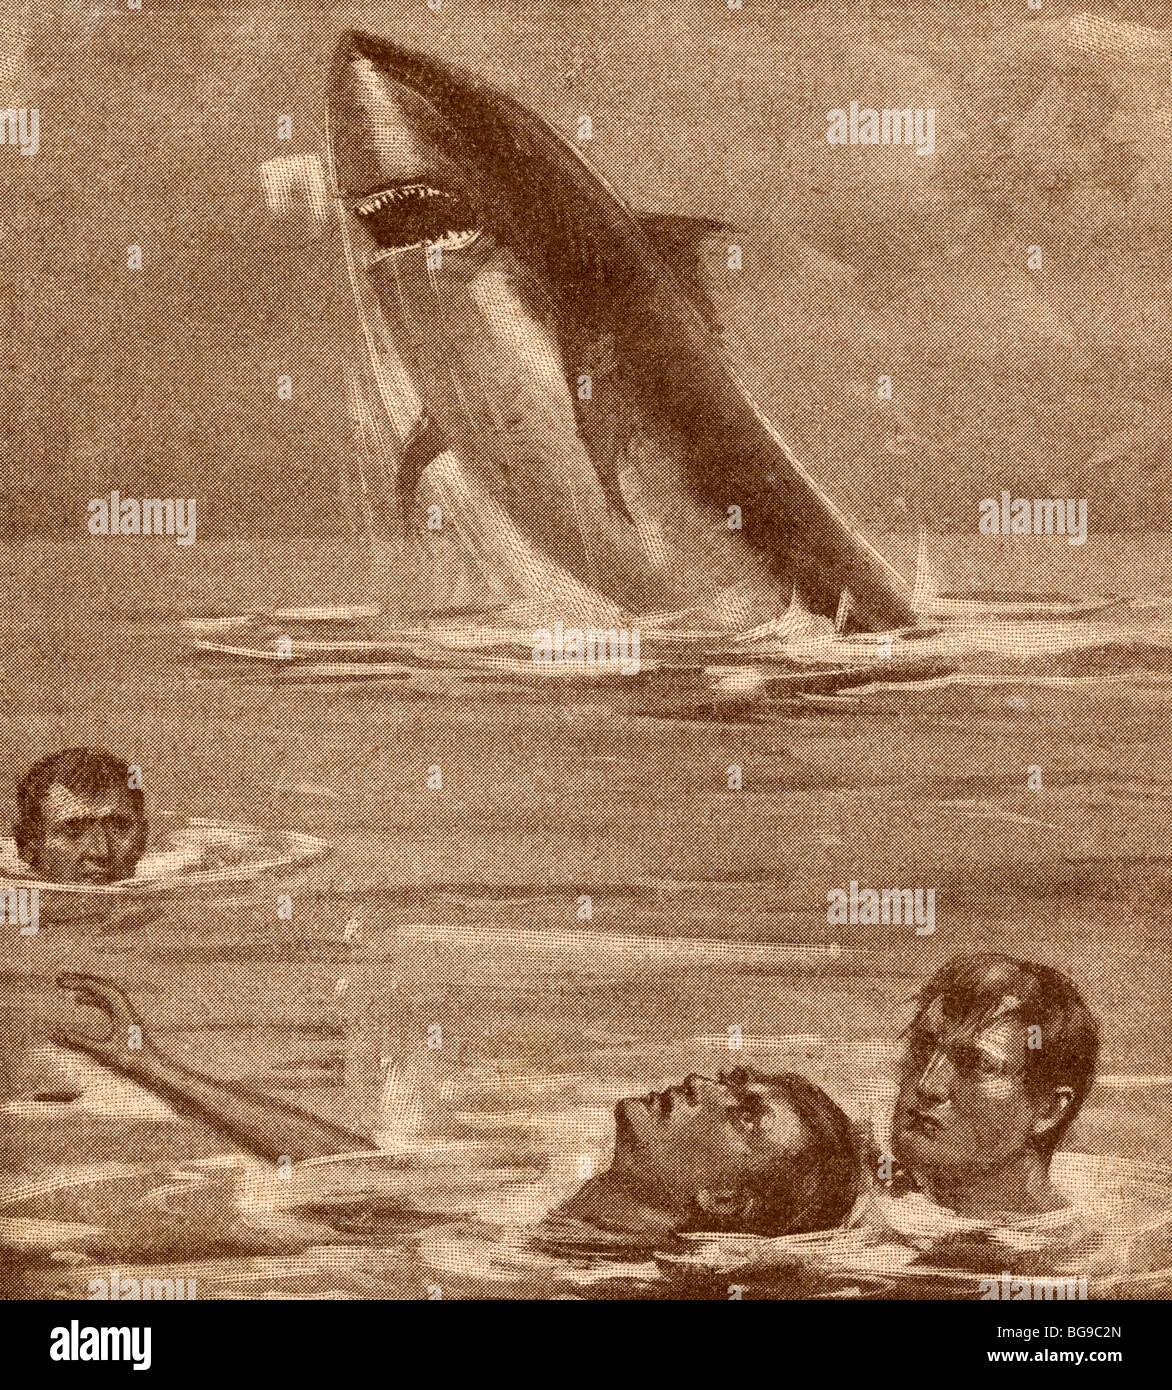 19th century illustration of man rescuing swimmer with shark in background. - Stock Image